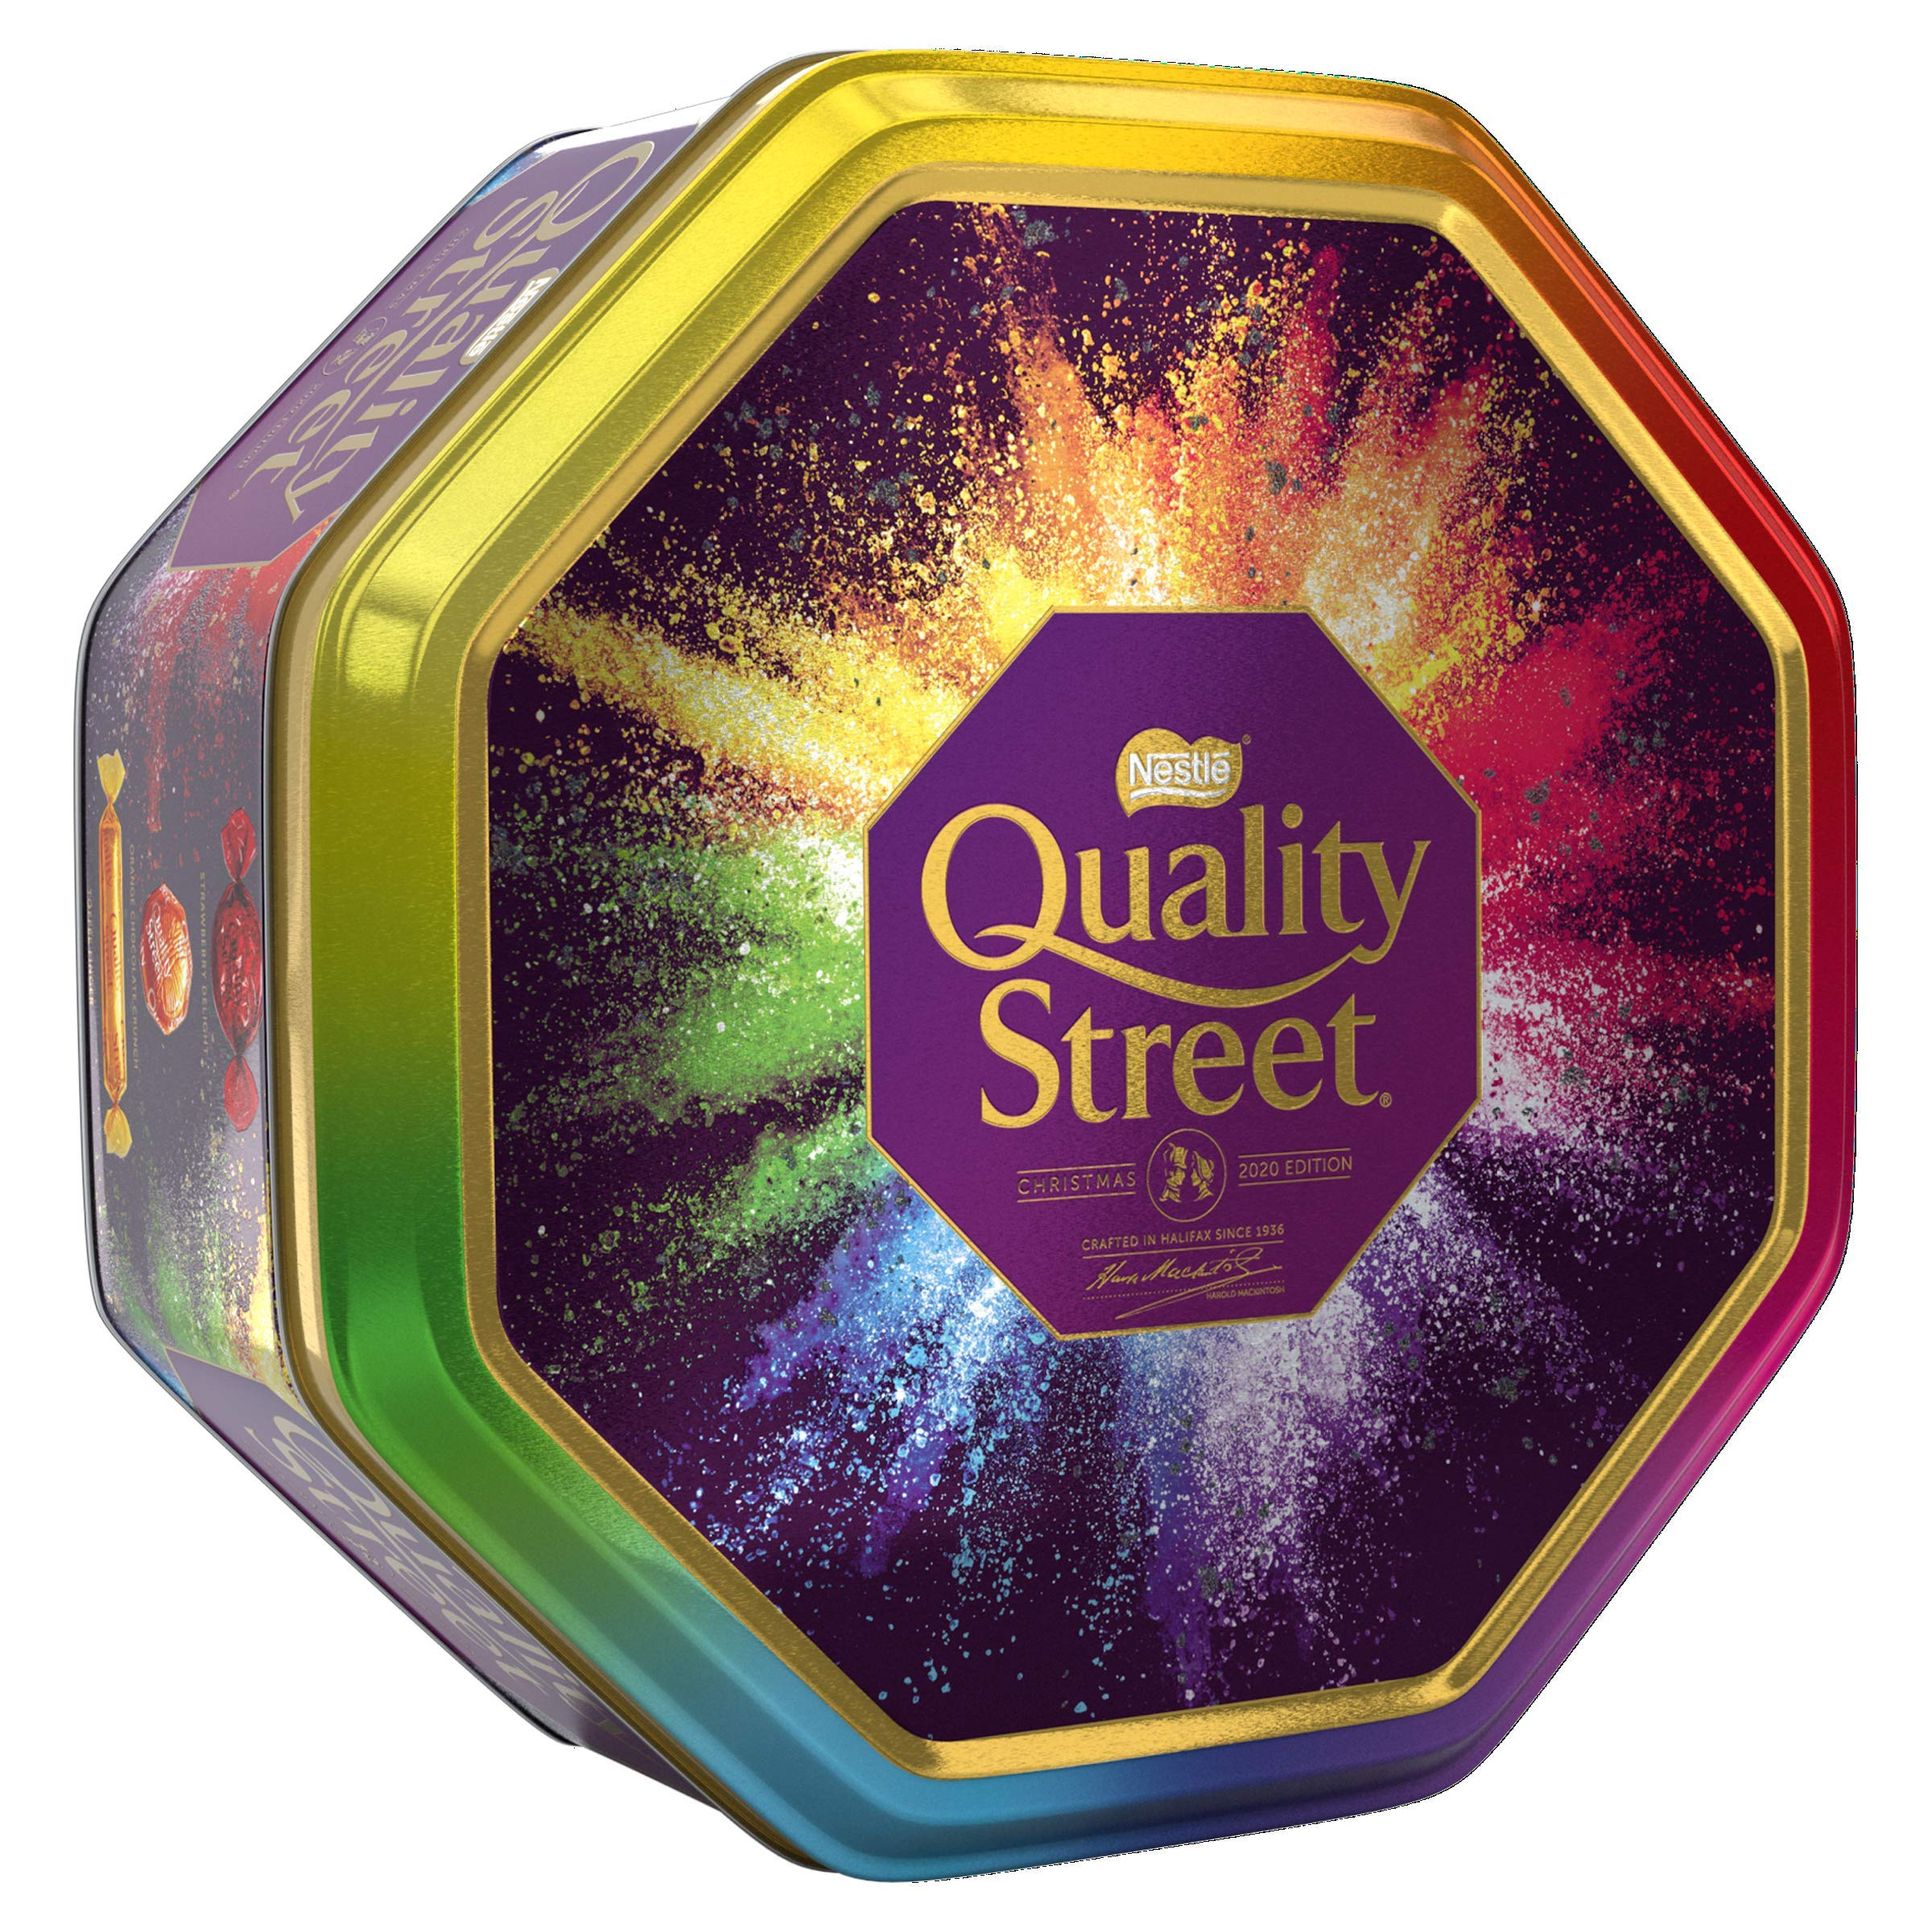 Quality Street Christmas Chocolate, Toffee and Cremes Tin, 1kg